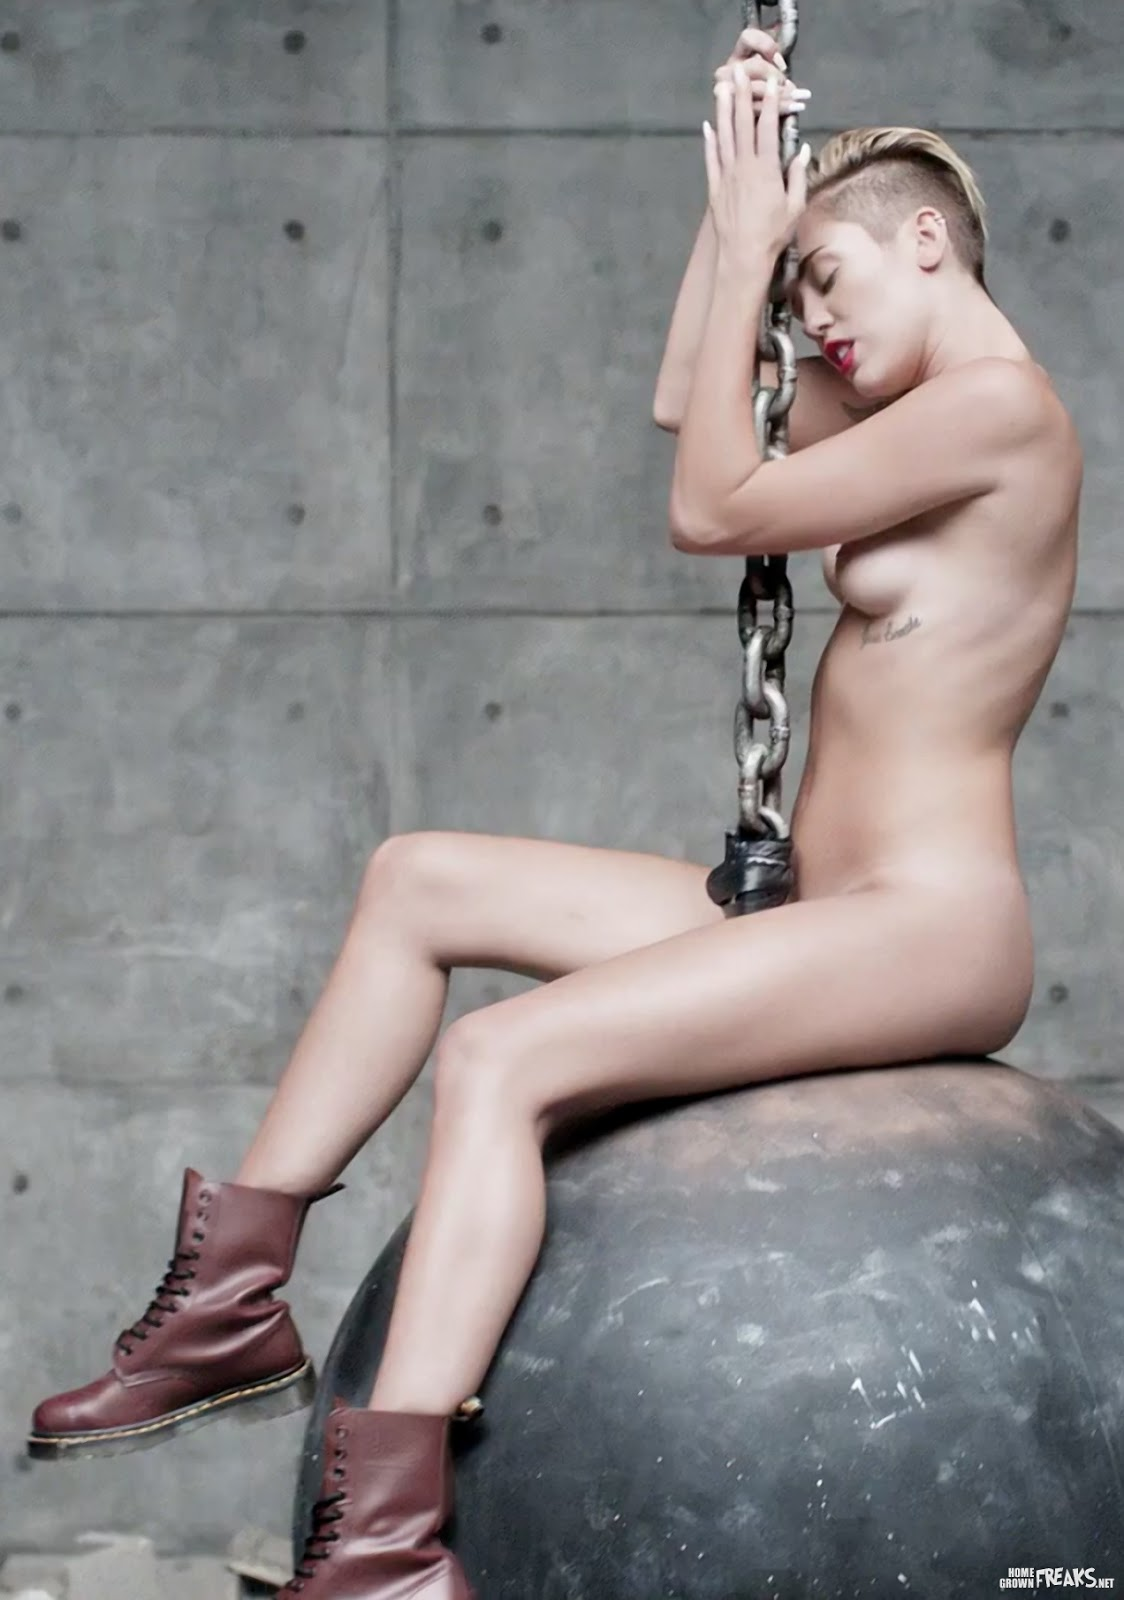 miley cyrus topless uncensored